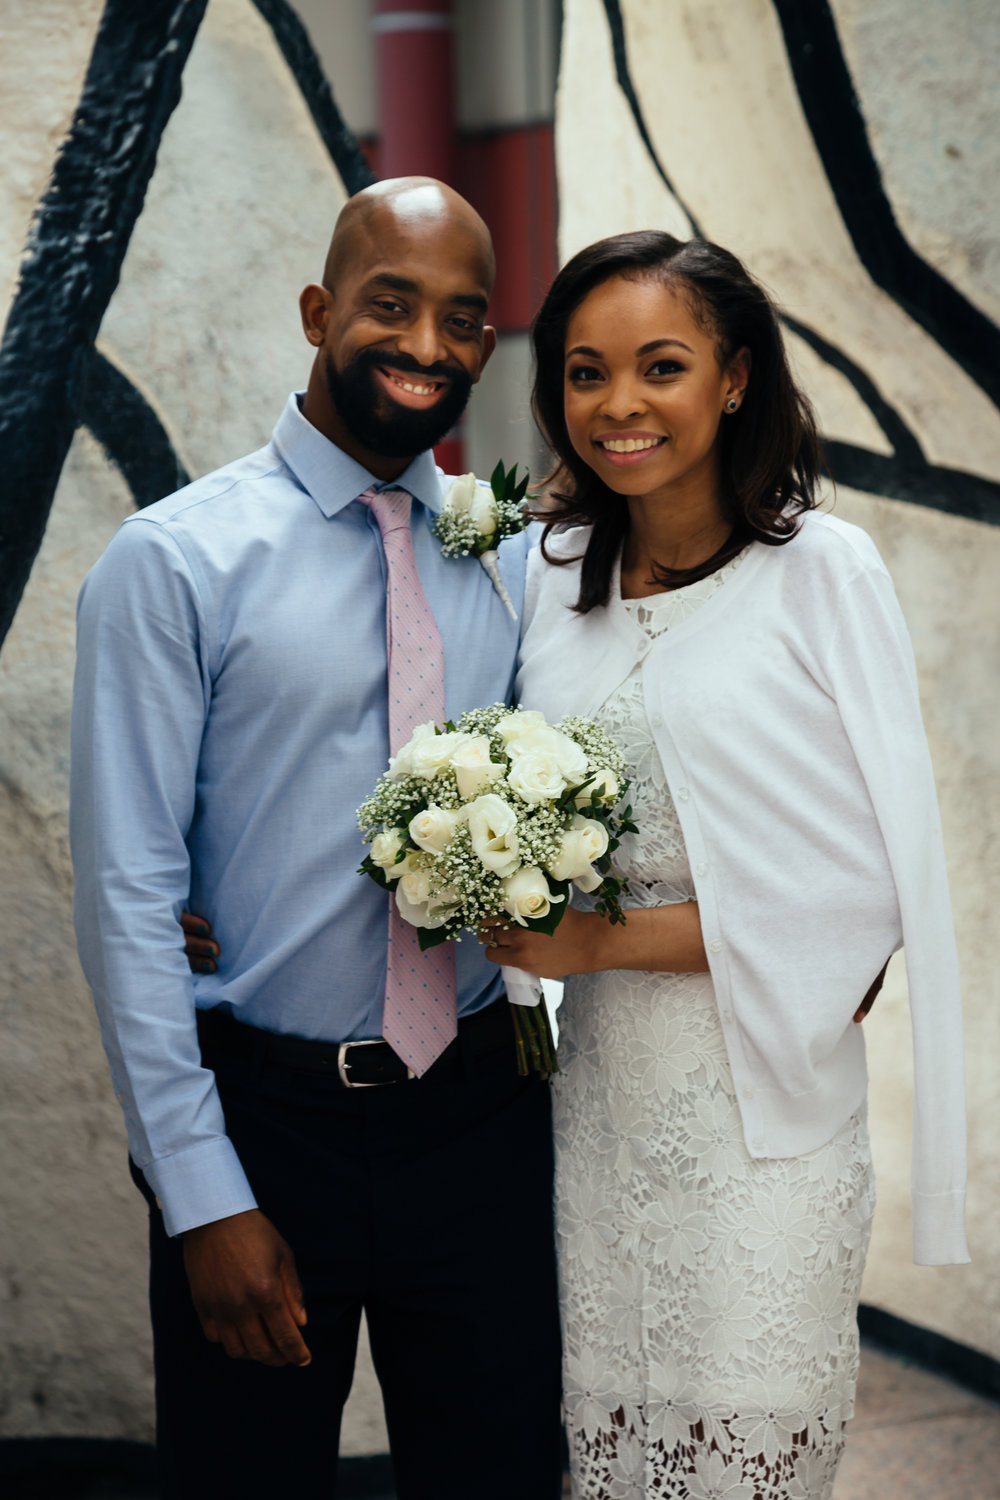 chicago_elopement_tony_brittany-4.jpg